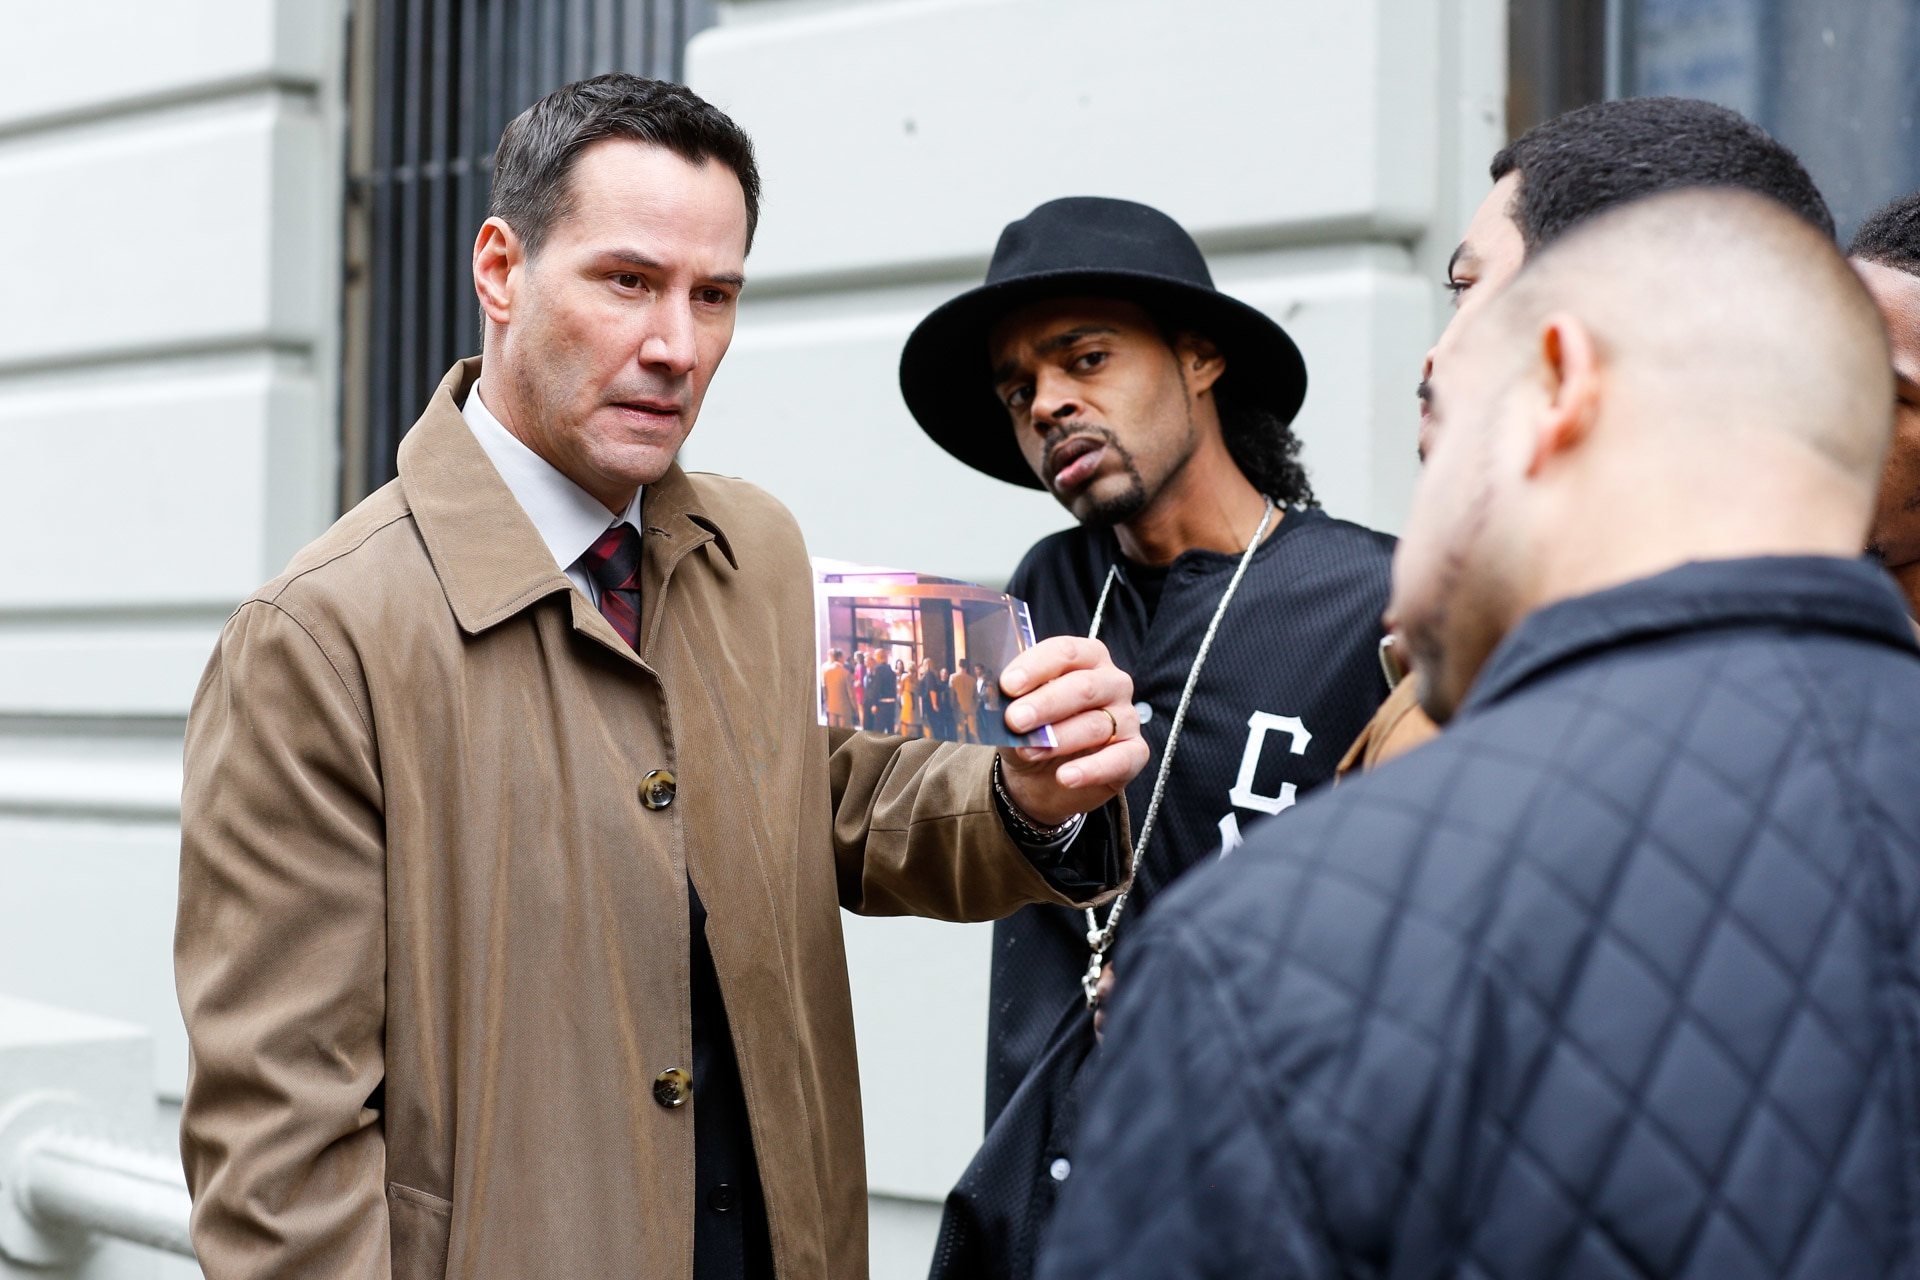 Daughter of God 2 - EFM 2015: Keanu Reeves Searches for the Daughter of God